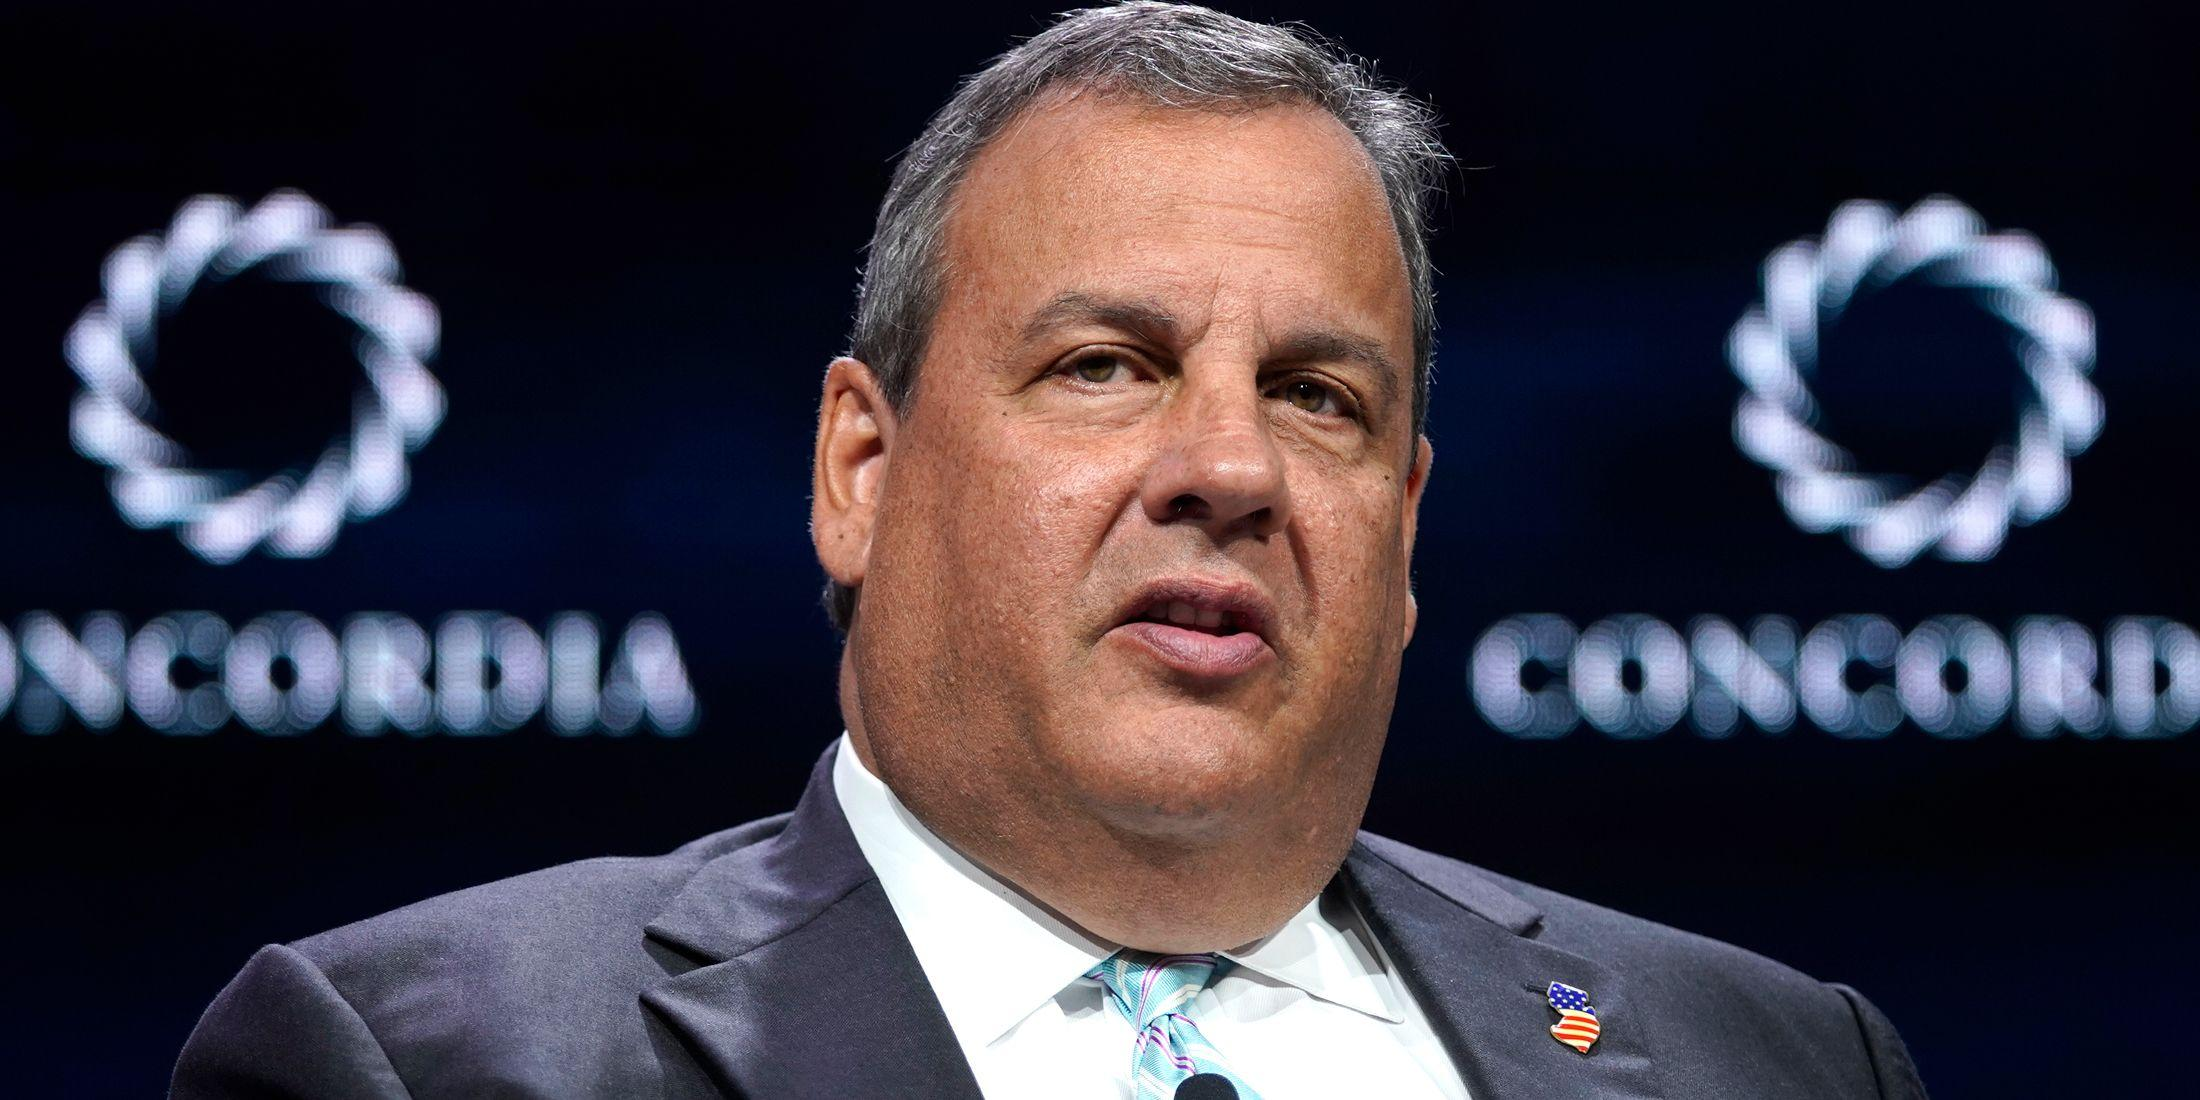 Chris Christie Is Among Lawyers Reaping $15 Million in 1MDB Deal